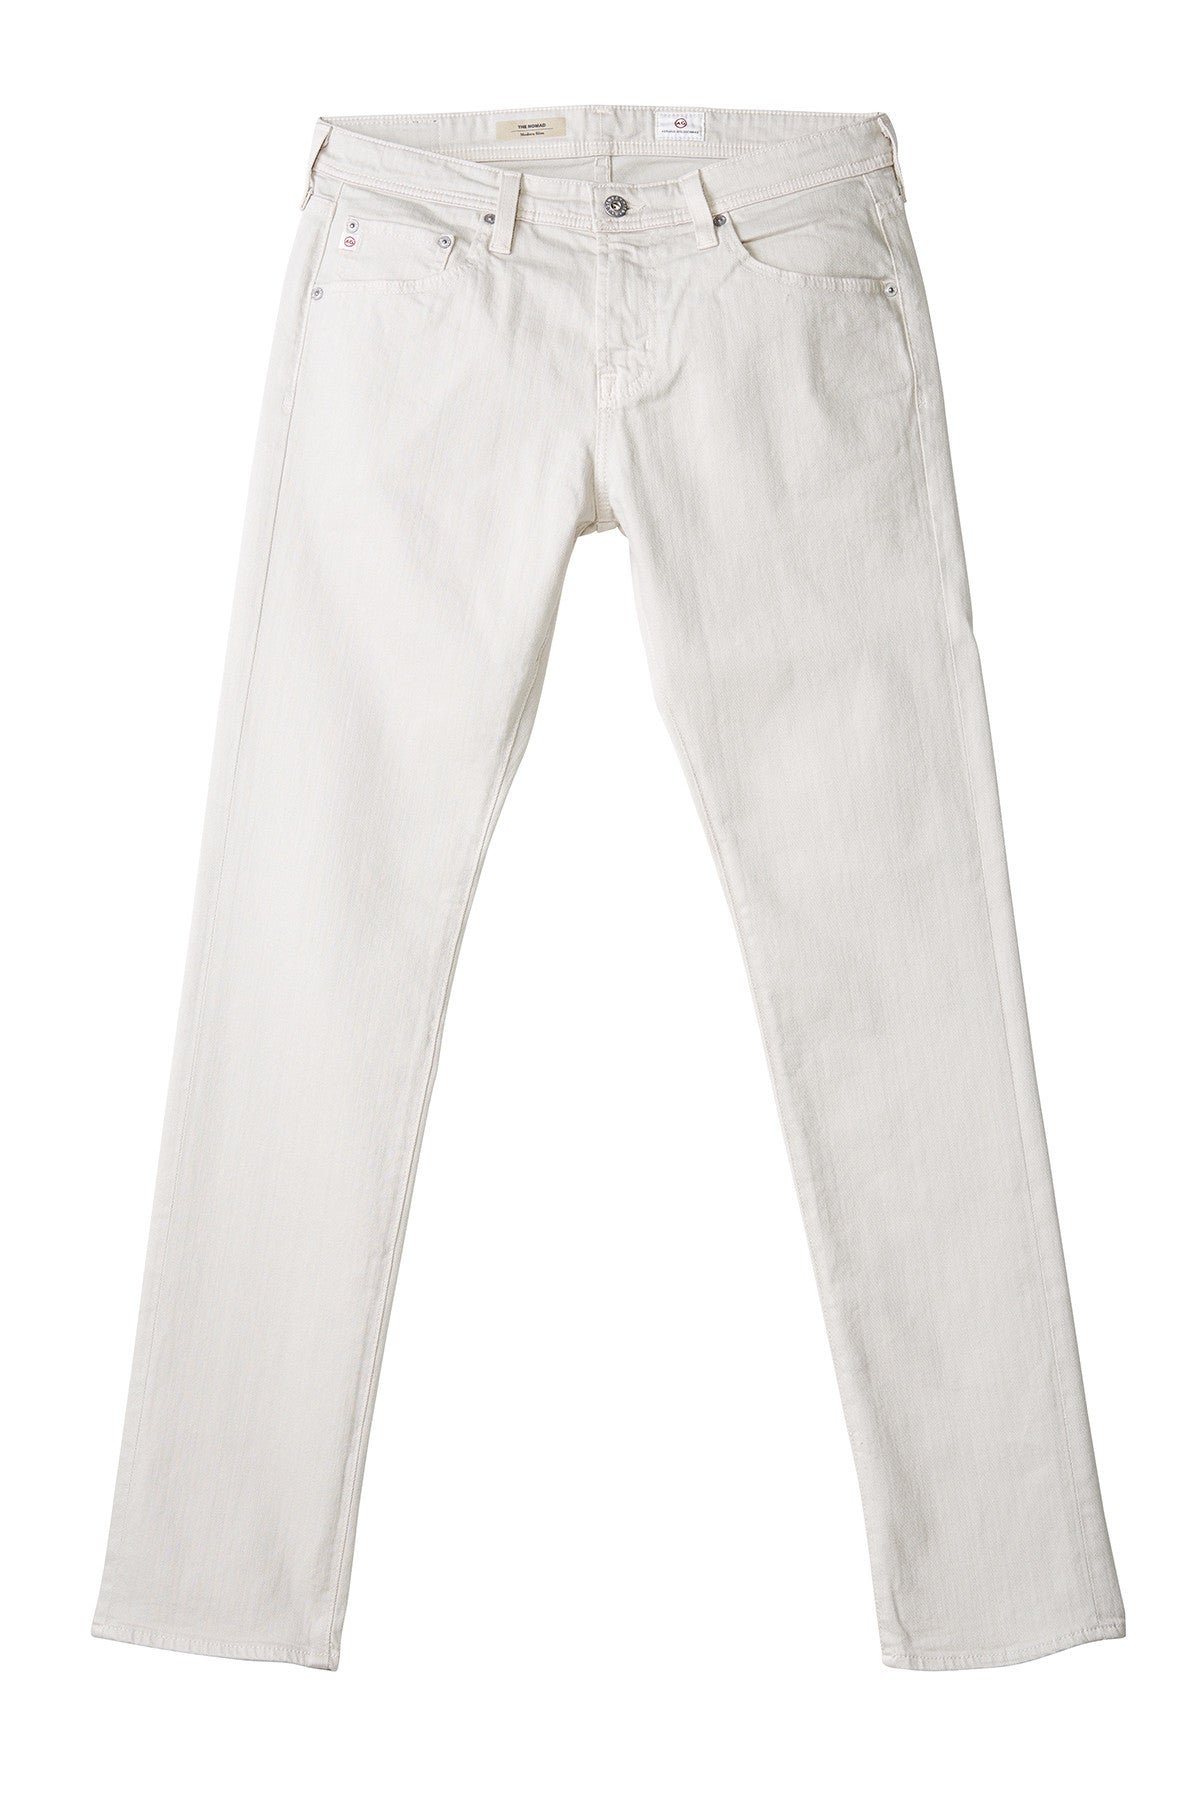 AG 'Nomad' Skinny Fit Jeans in Bleached Sand